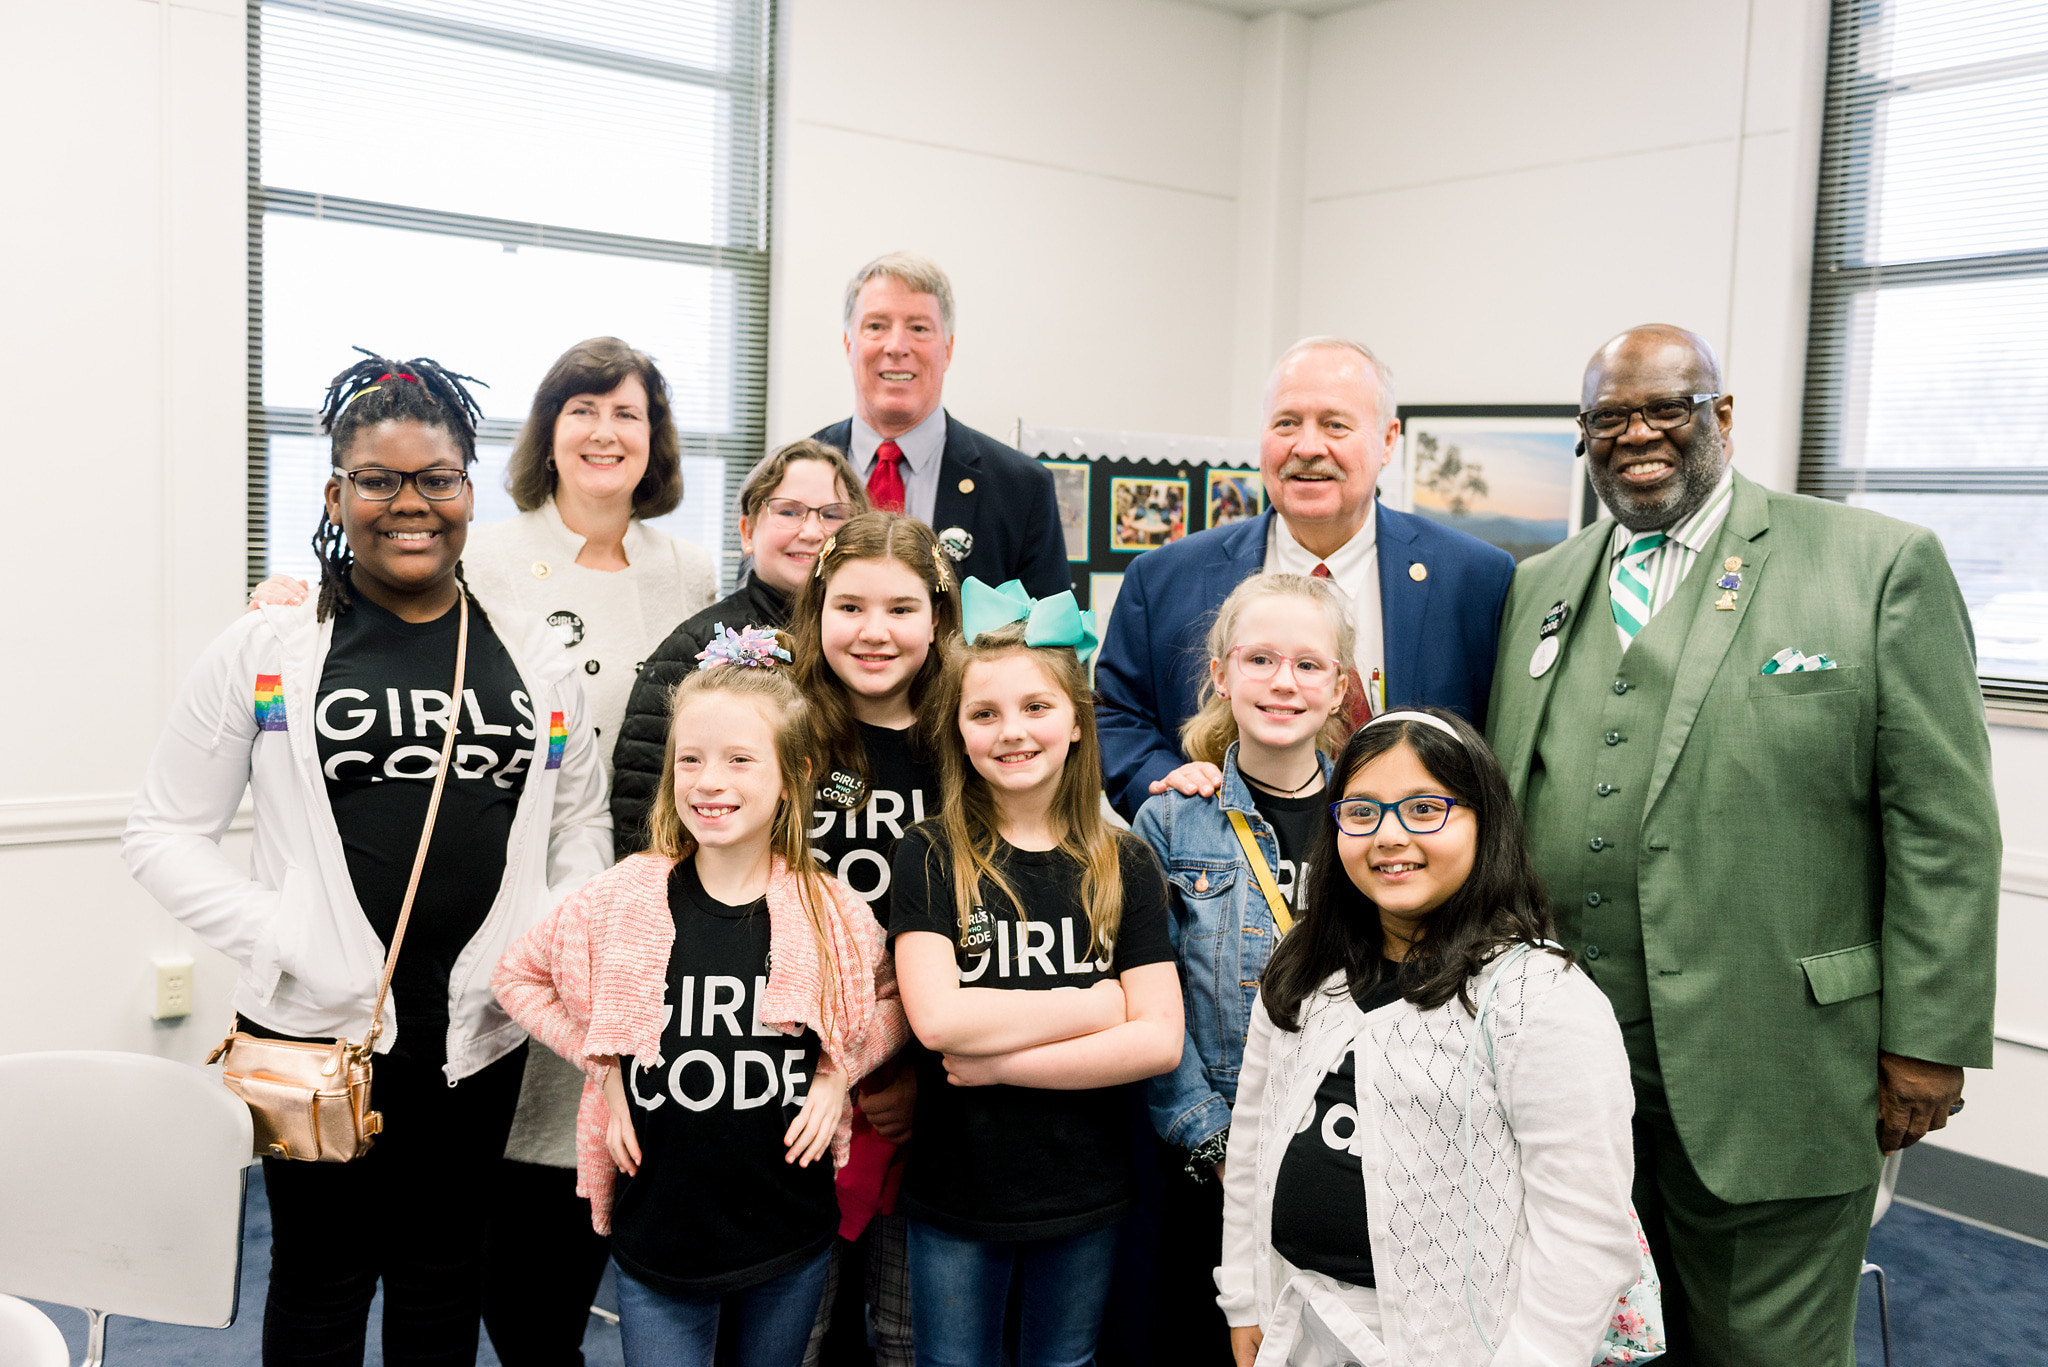 Girls Who Code Works With Commonwealth of Kentucky on Comprehensive Legislation Aimed at Closing the Gender Gap in Tech - girlswhocode